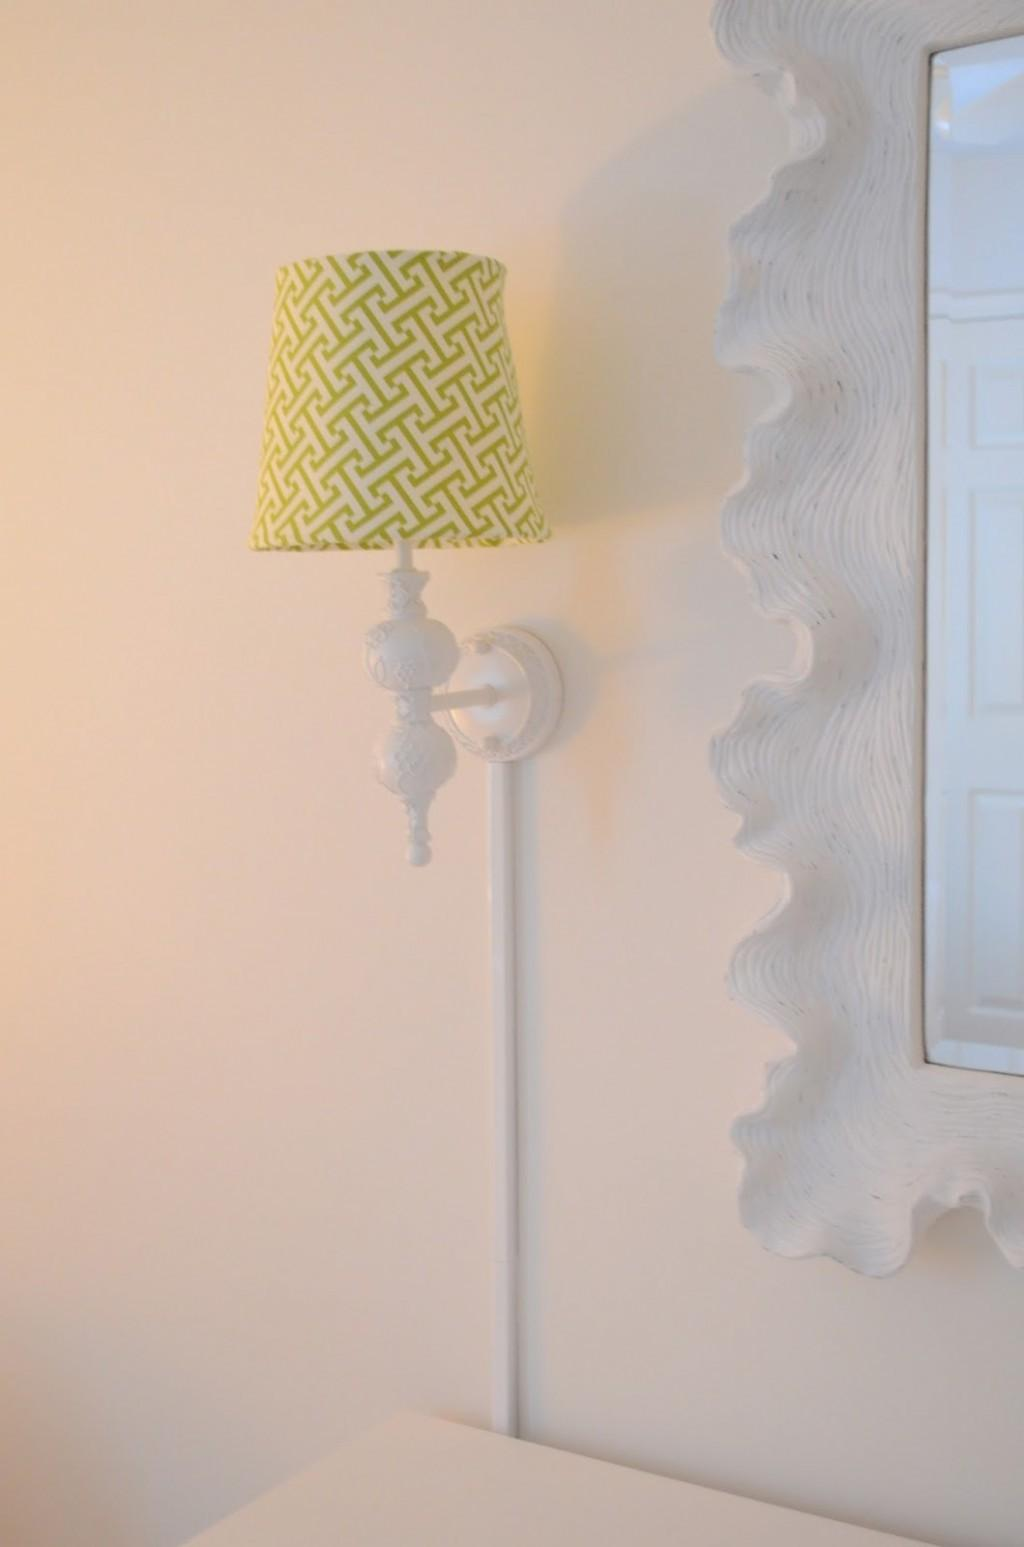 Lovely Wall Sconces Decorative Electric Cord Covers